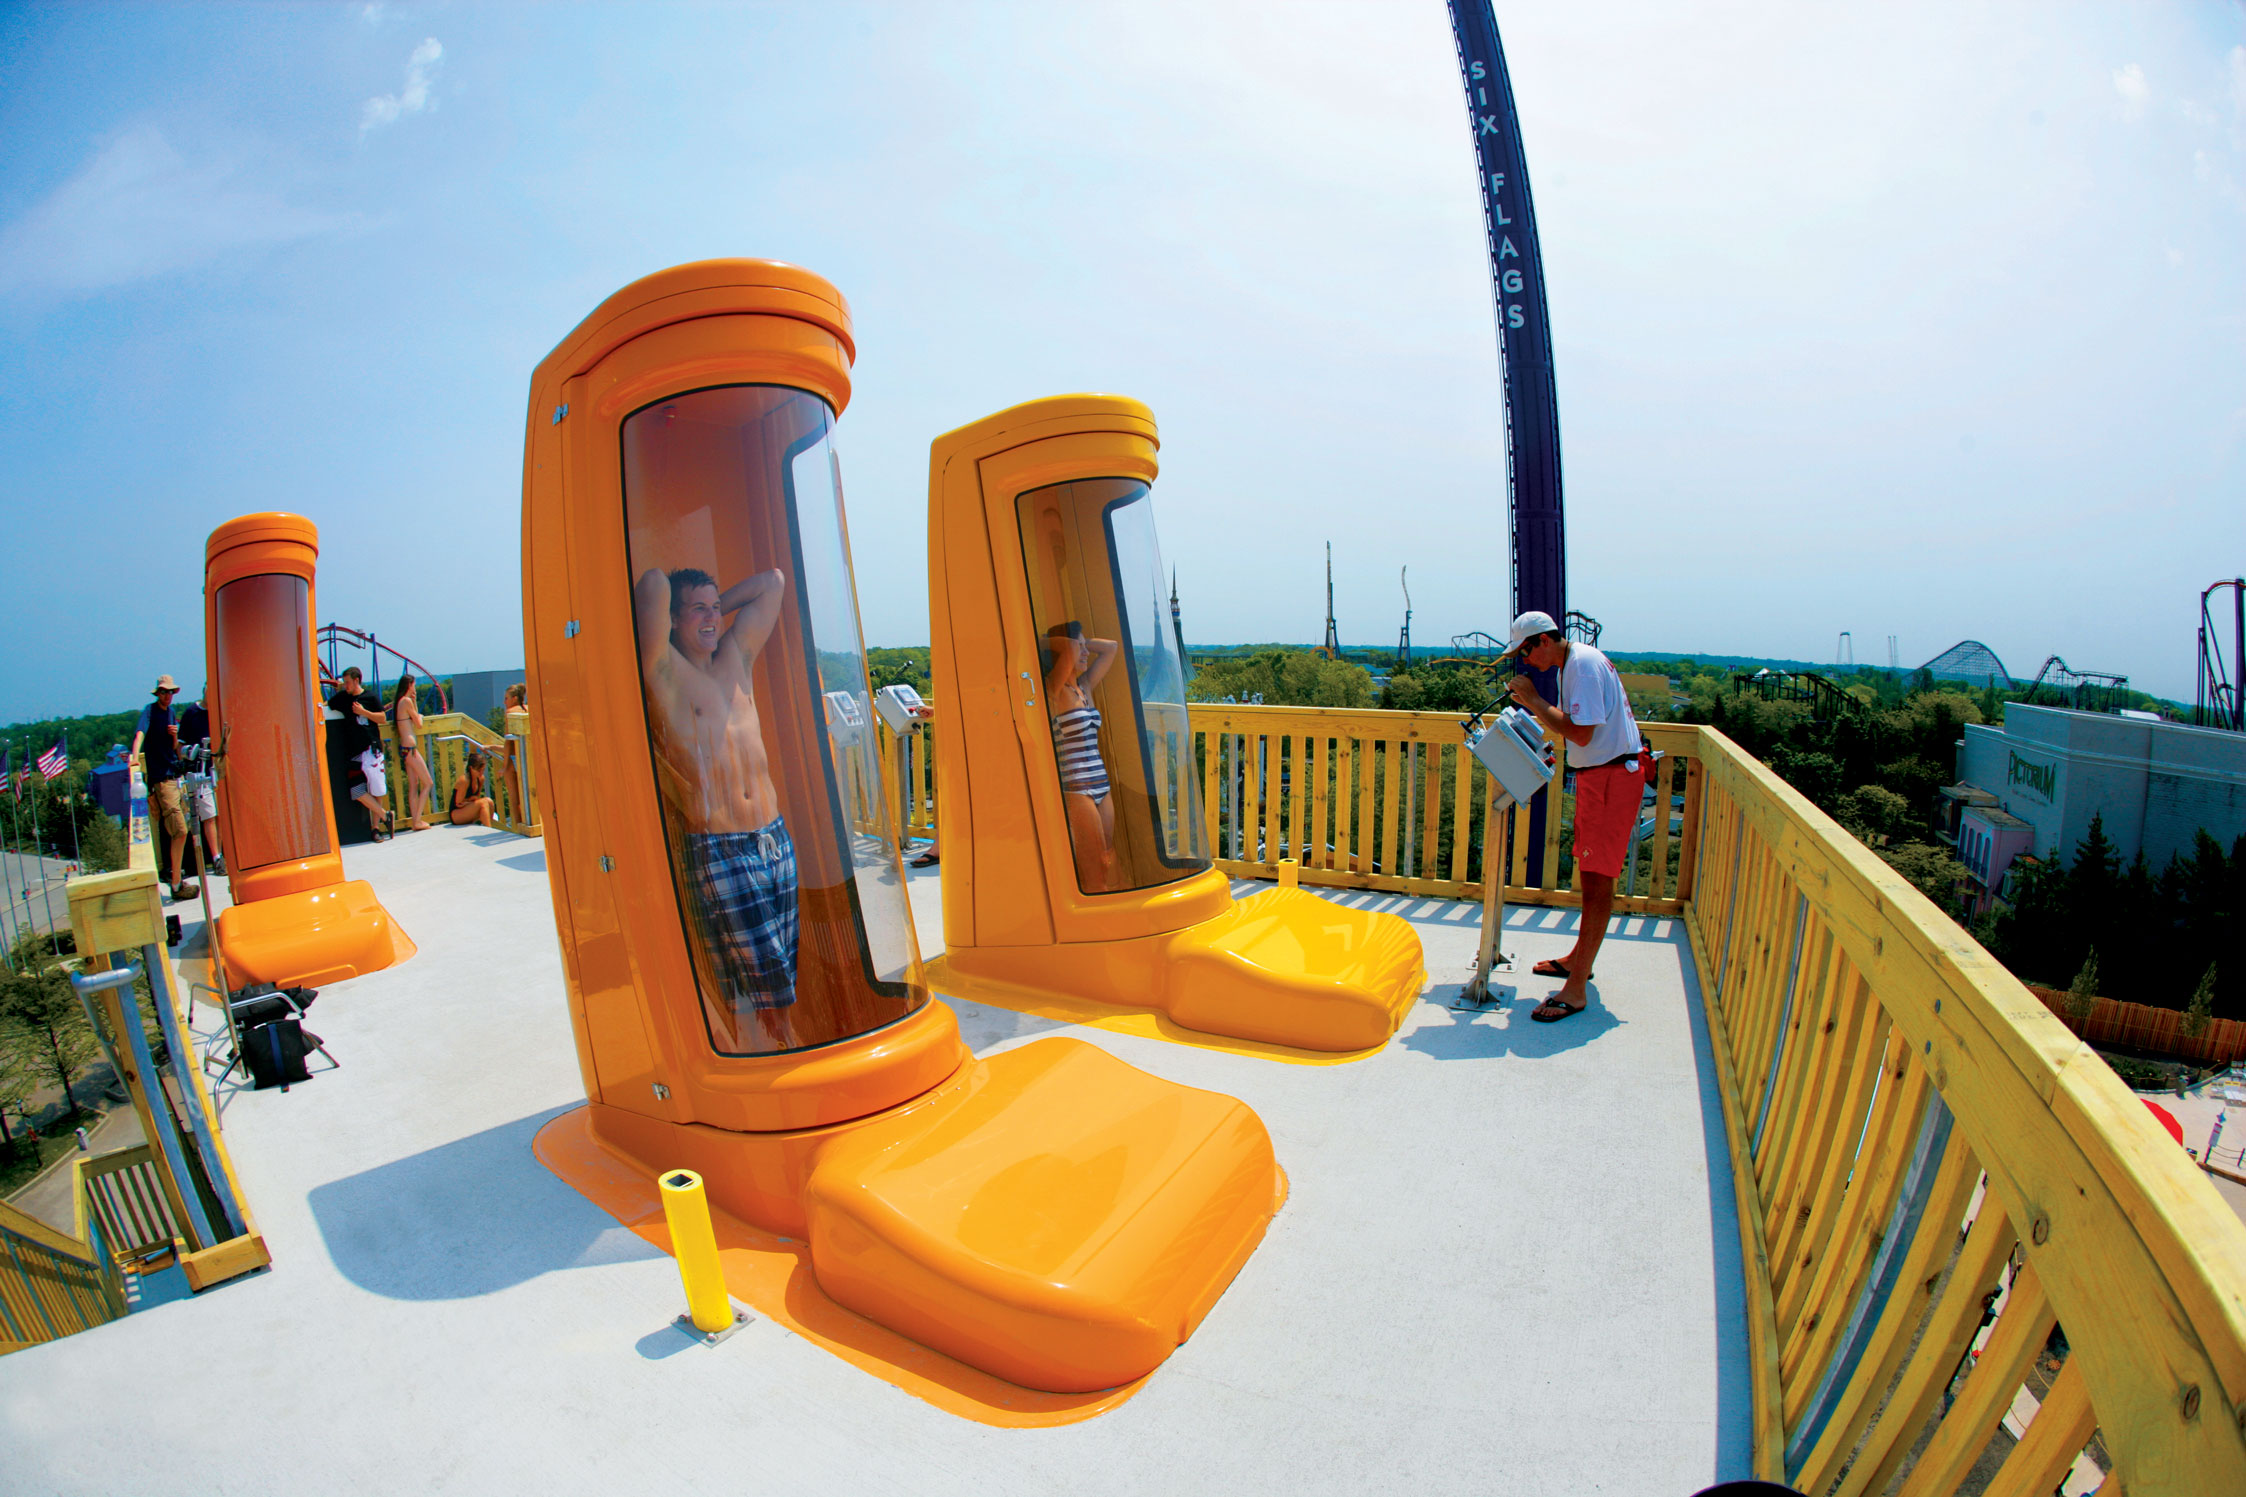 Super Loop SkyBox slide, photo courtesy Kalahari Resorts